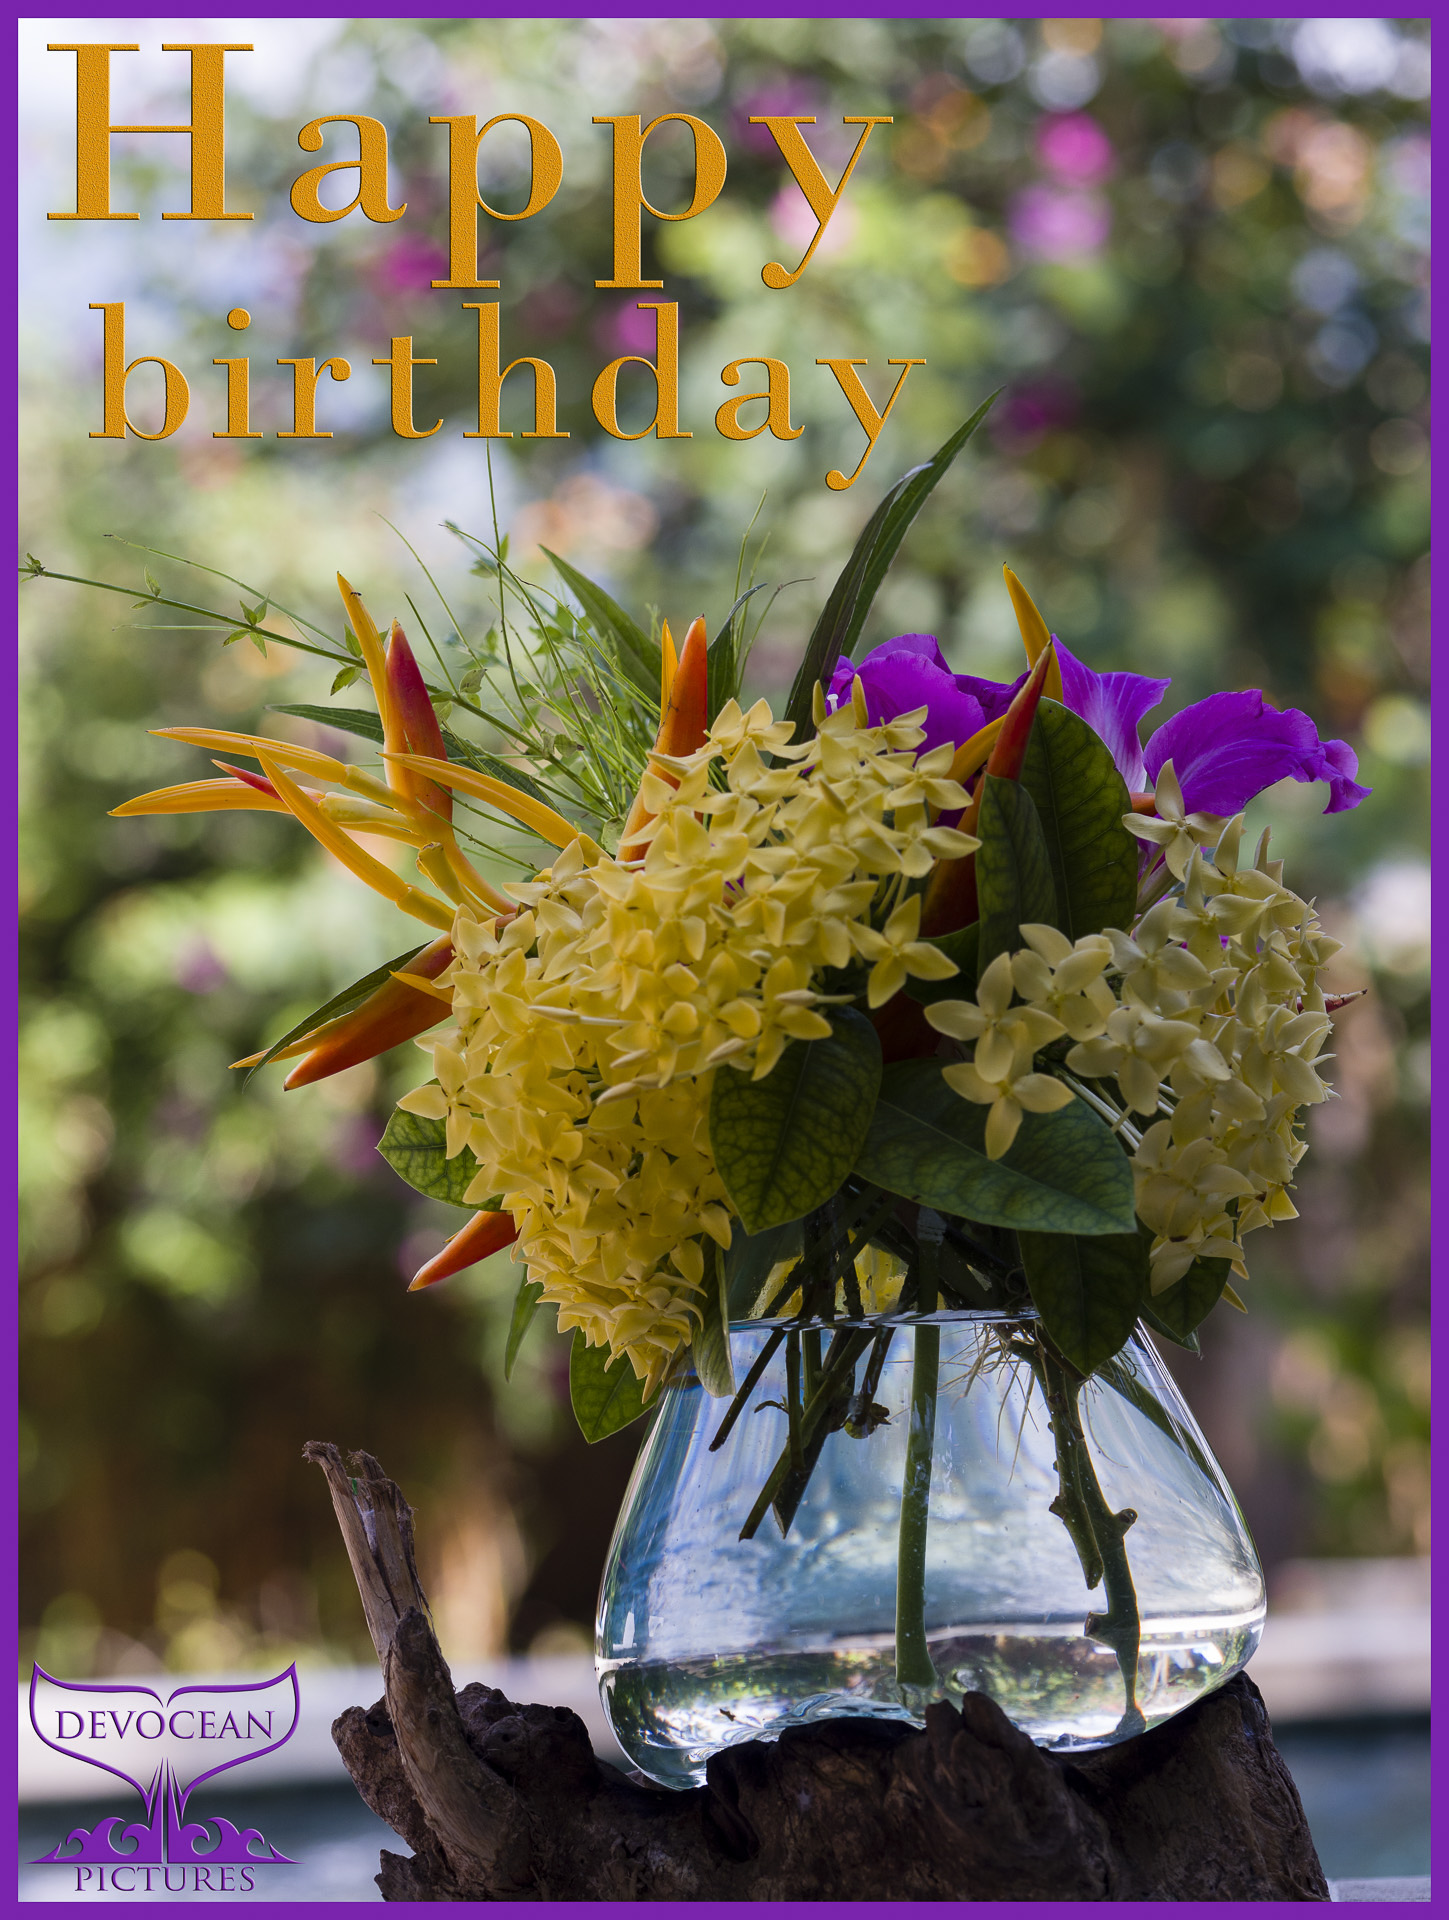 """Tropical flowers standing in a glass vase on a piece of wood: yellow, purple, orange, red and green for a blurry background of trees with flowers in pink, yellow andd orange. Prepared as postcard """"Happy birthday"""" and logo of Devocean Pictures"""